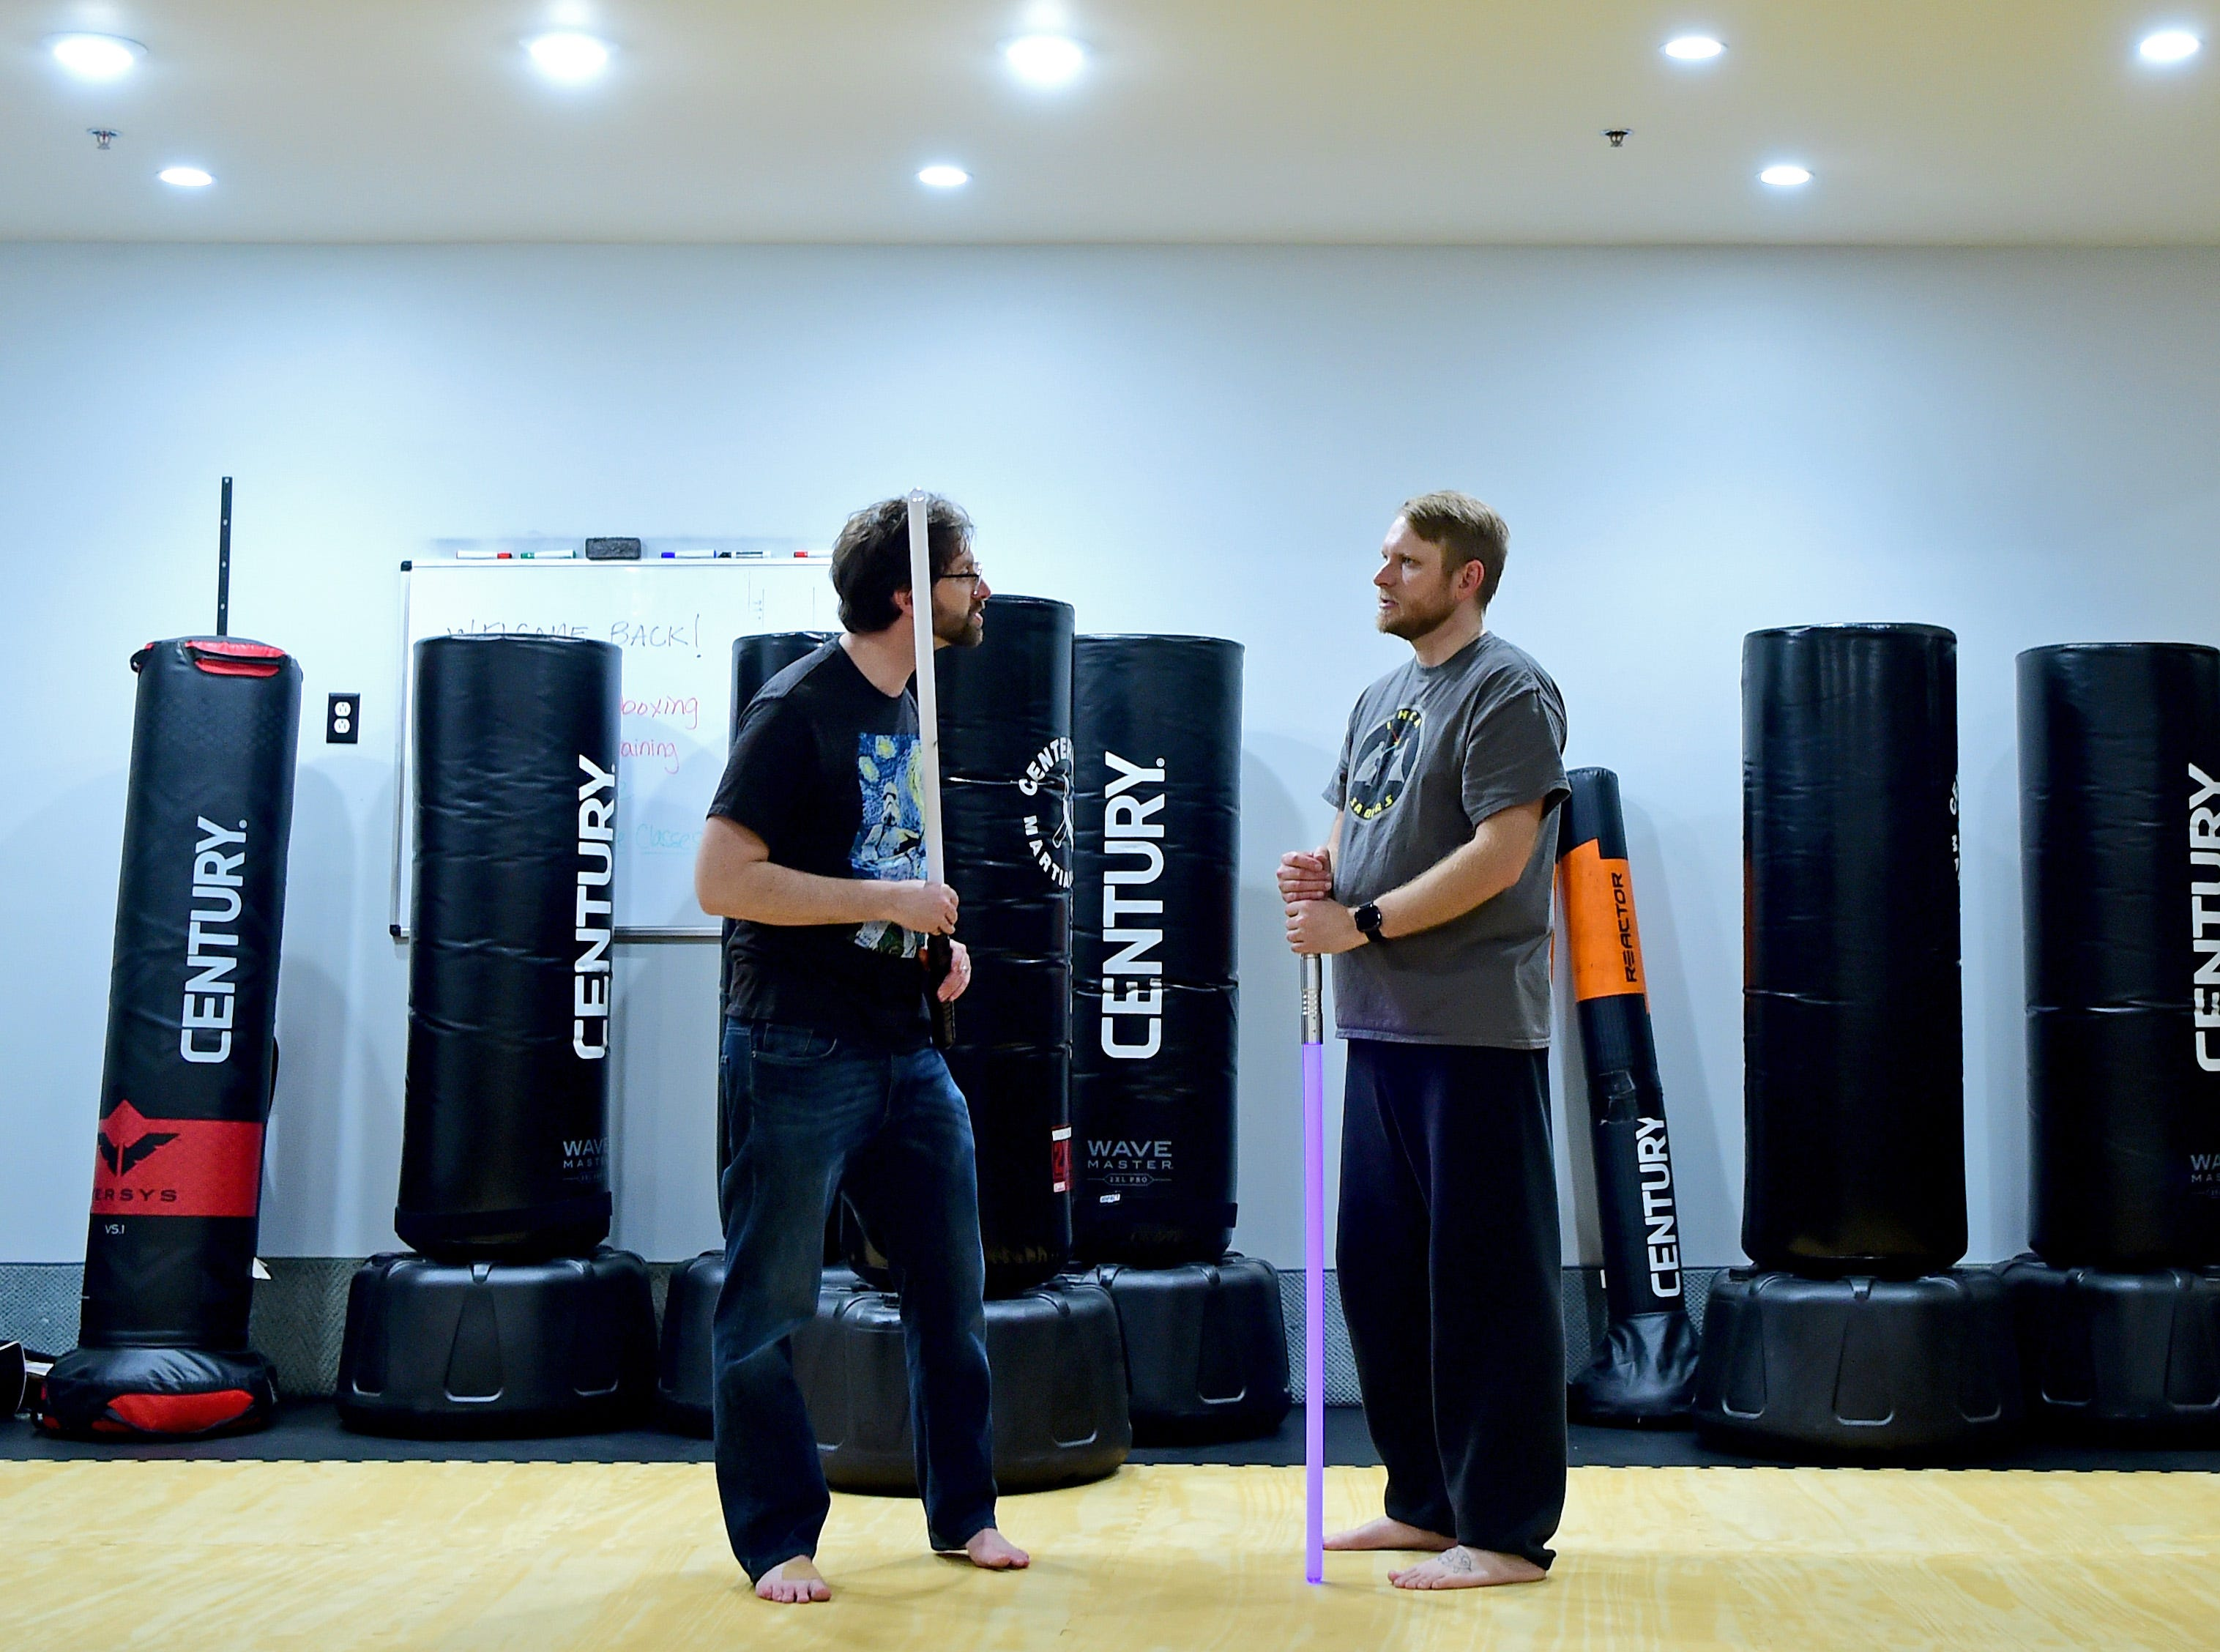 Andrew Hocking, left, of Ithaca, and Terry Gray, right, of Lansing, during the weekly meeting of the Ithaca Sabers at Centerline Fitness & Martial Arts in Ithaca.  February 4, 2019.